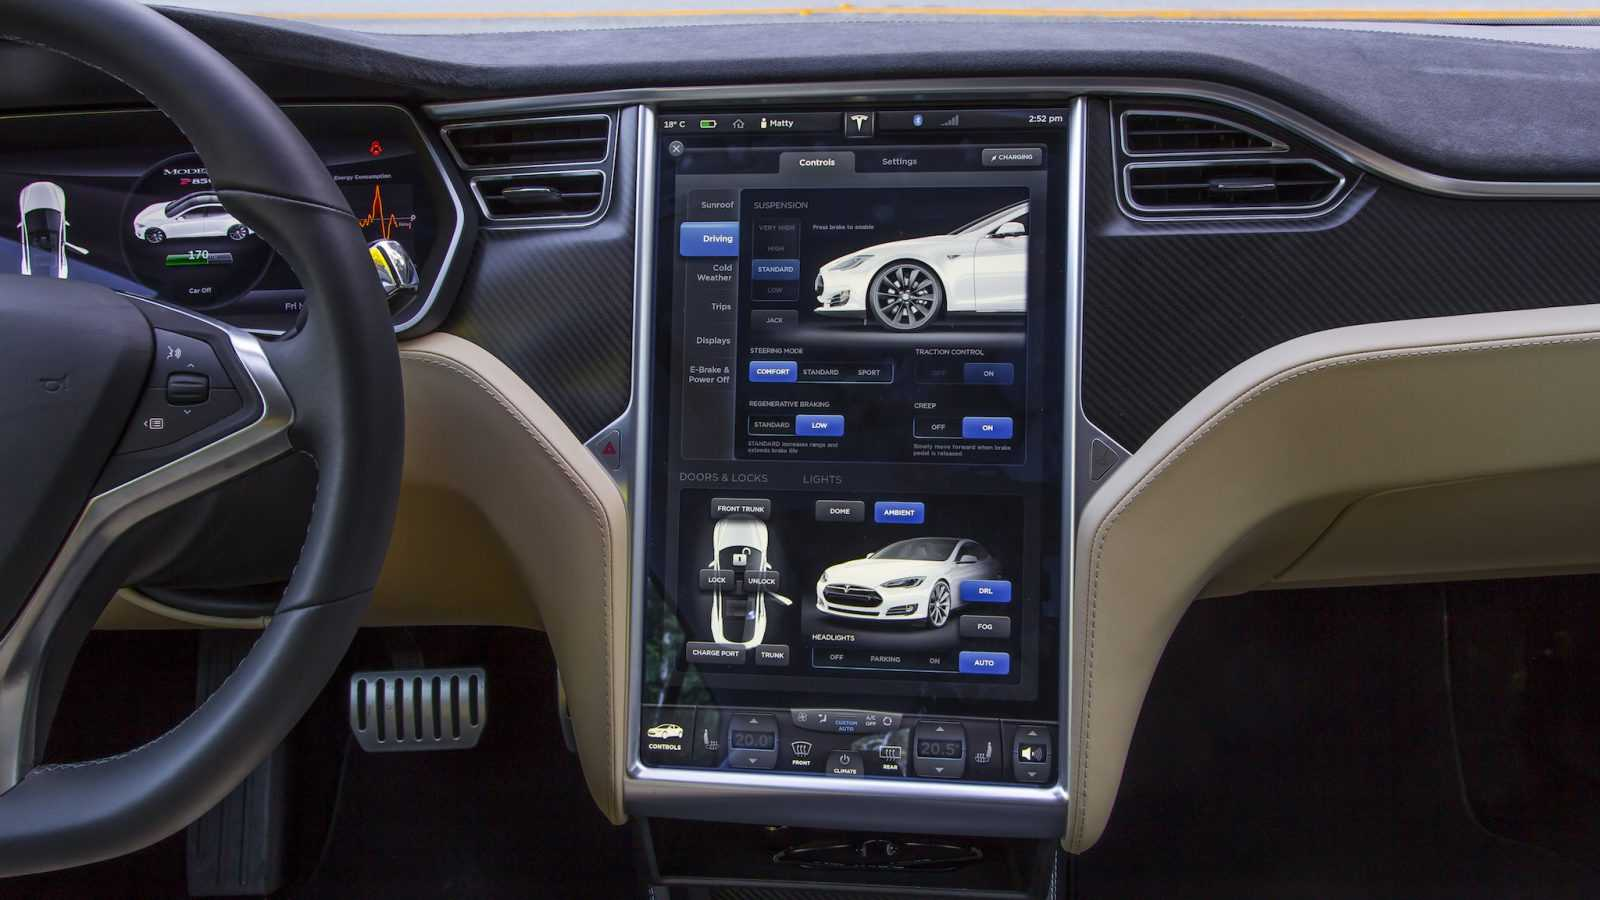 Did you know that Model S received the award of Motor Trend Car of the Year for being an electric car